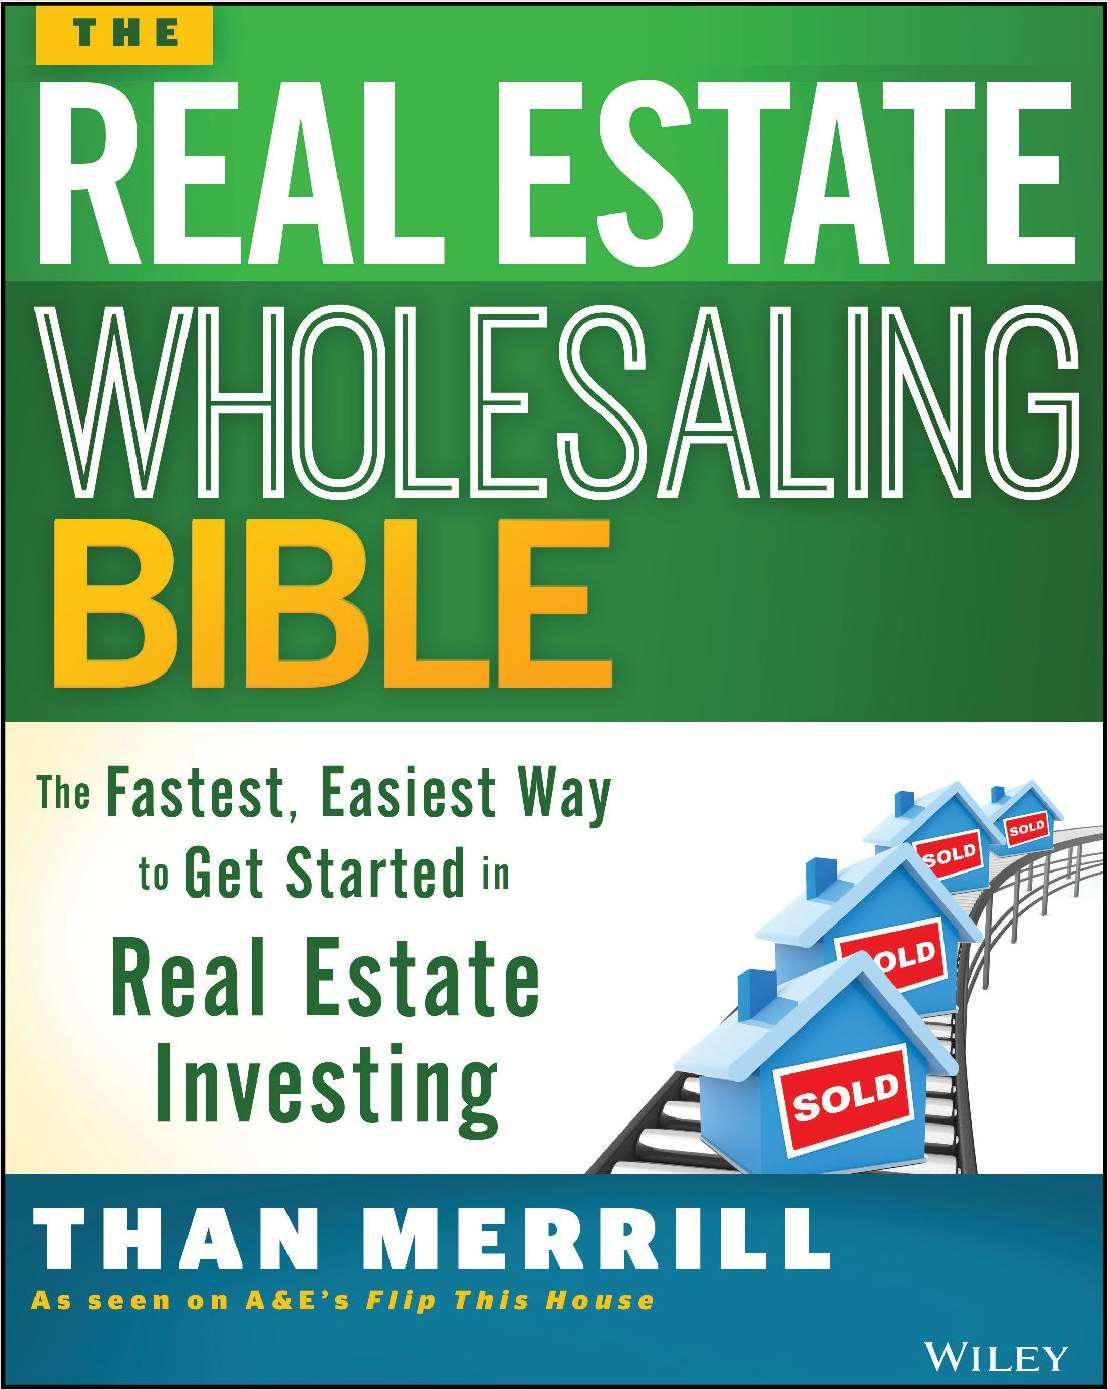 The Real Estate Wholesaling Bible: The Fastest, Easiest Way to Get Started in Real Estate Investing--Free Sample Chapter